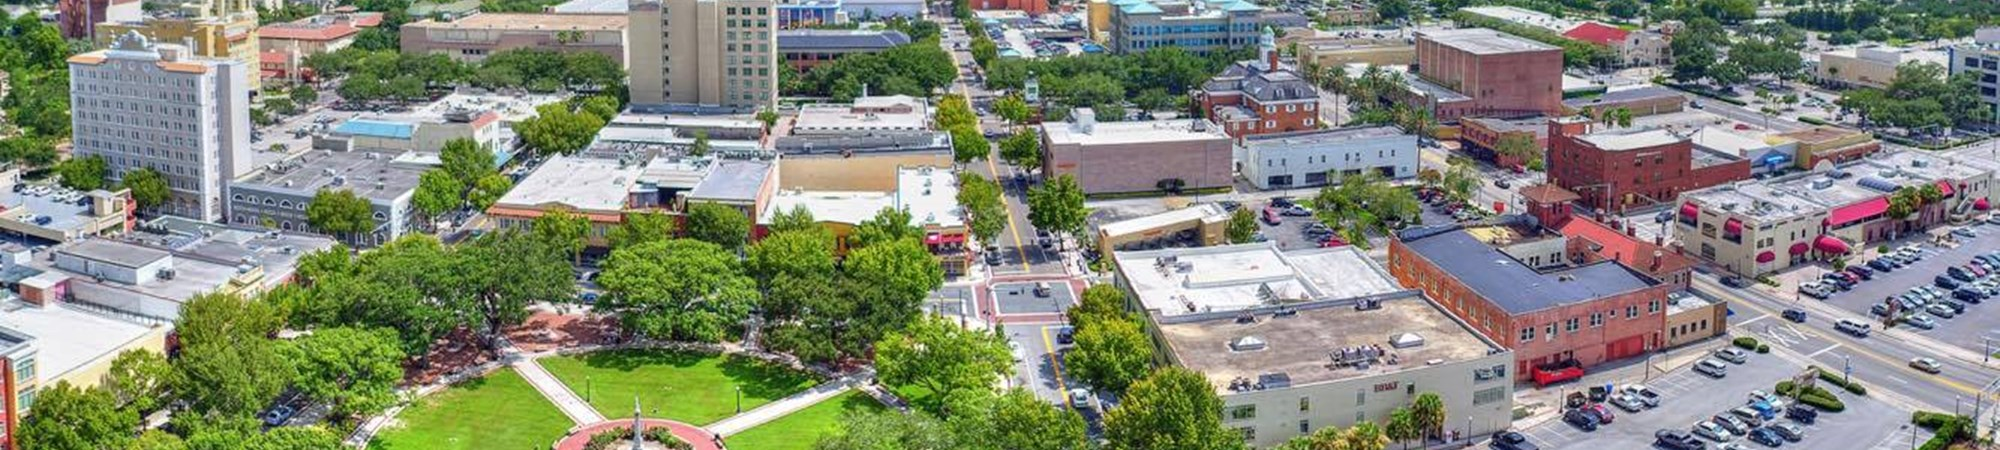 Downtown Lakeland aerial drone Panorama over Munn Park